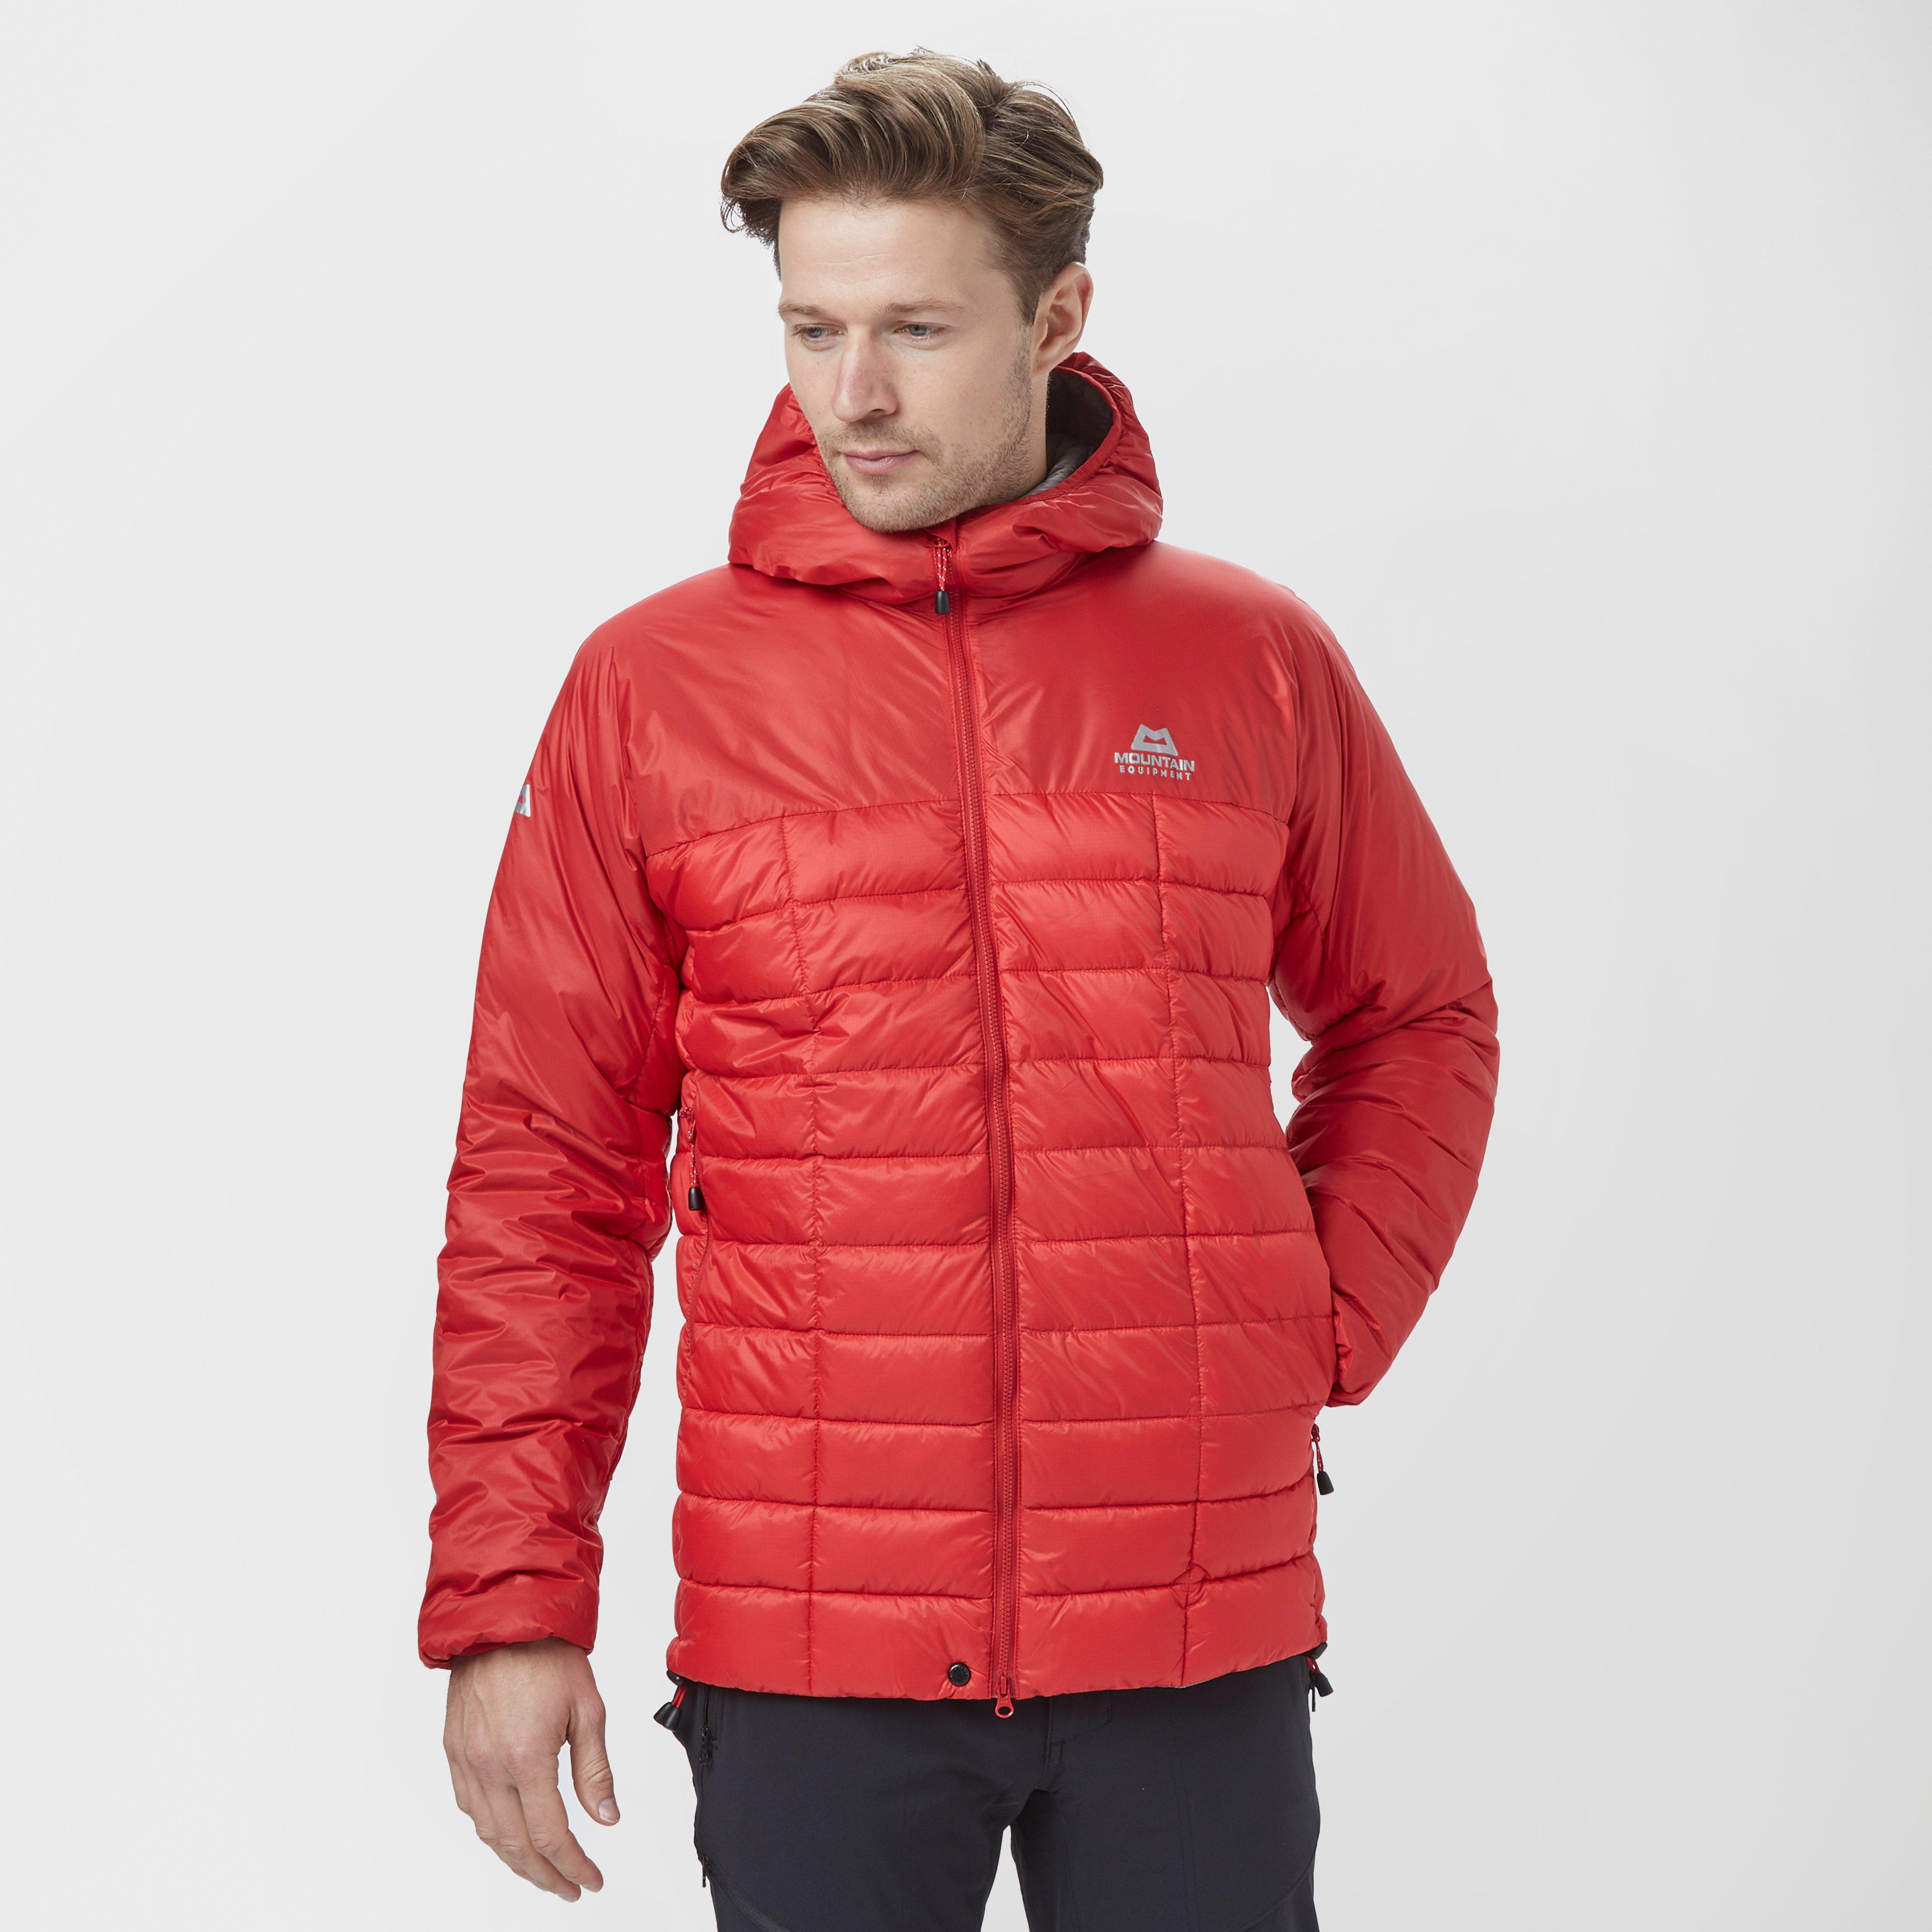 Mountain Equipment Mountain Equipment Mens Superflux Insulated Jacket - Red, Red